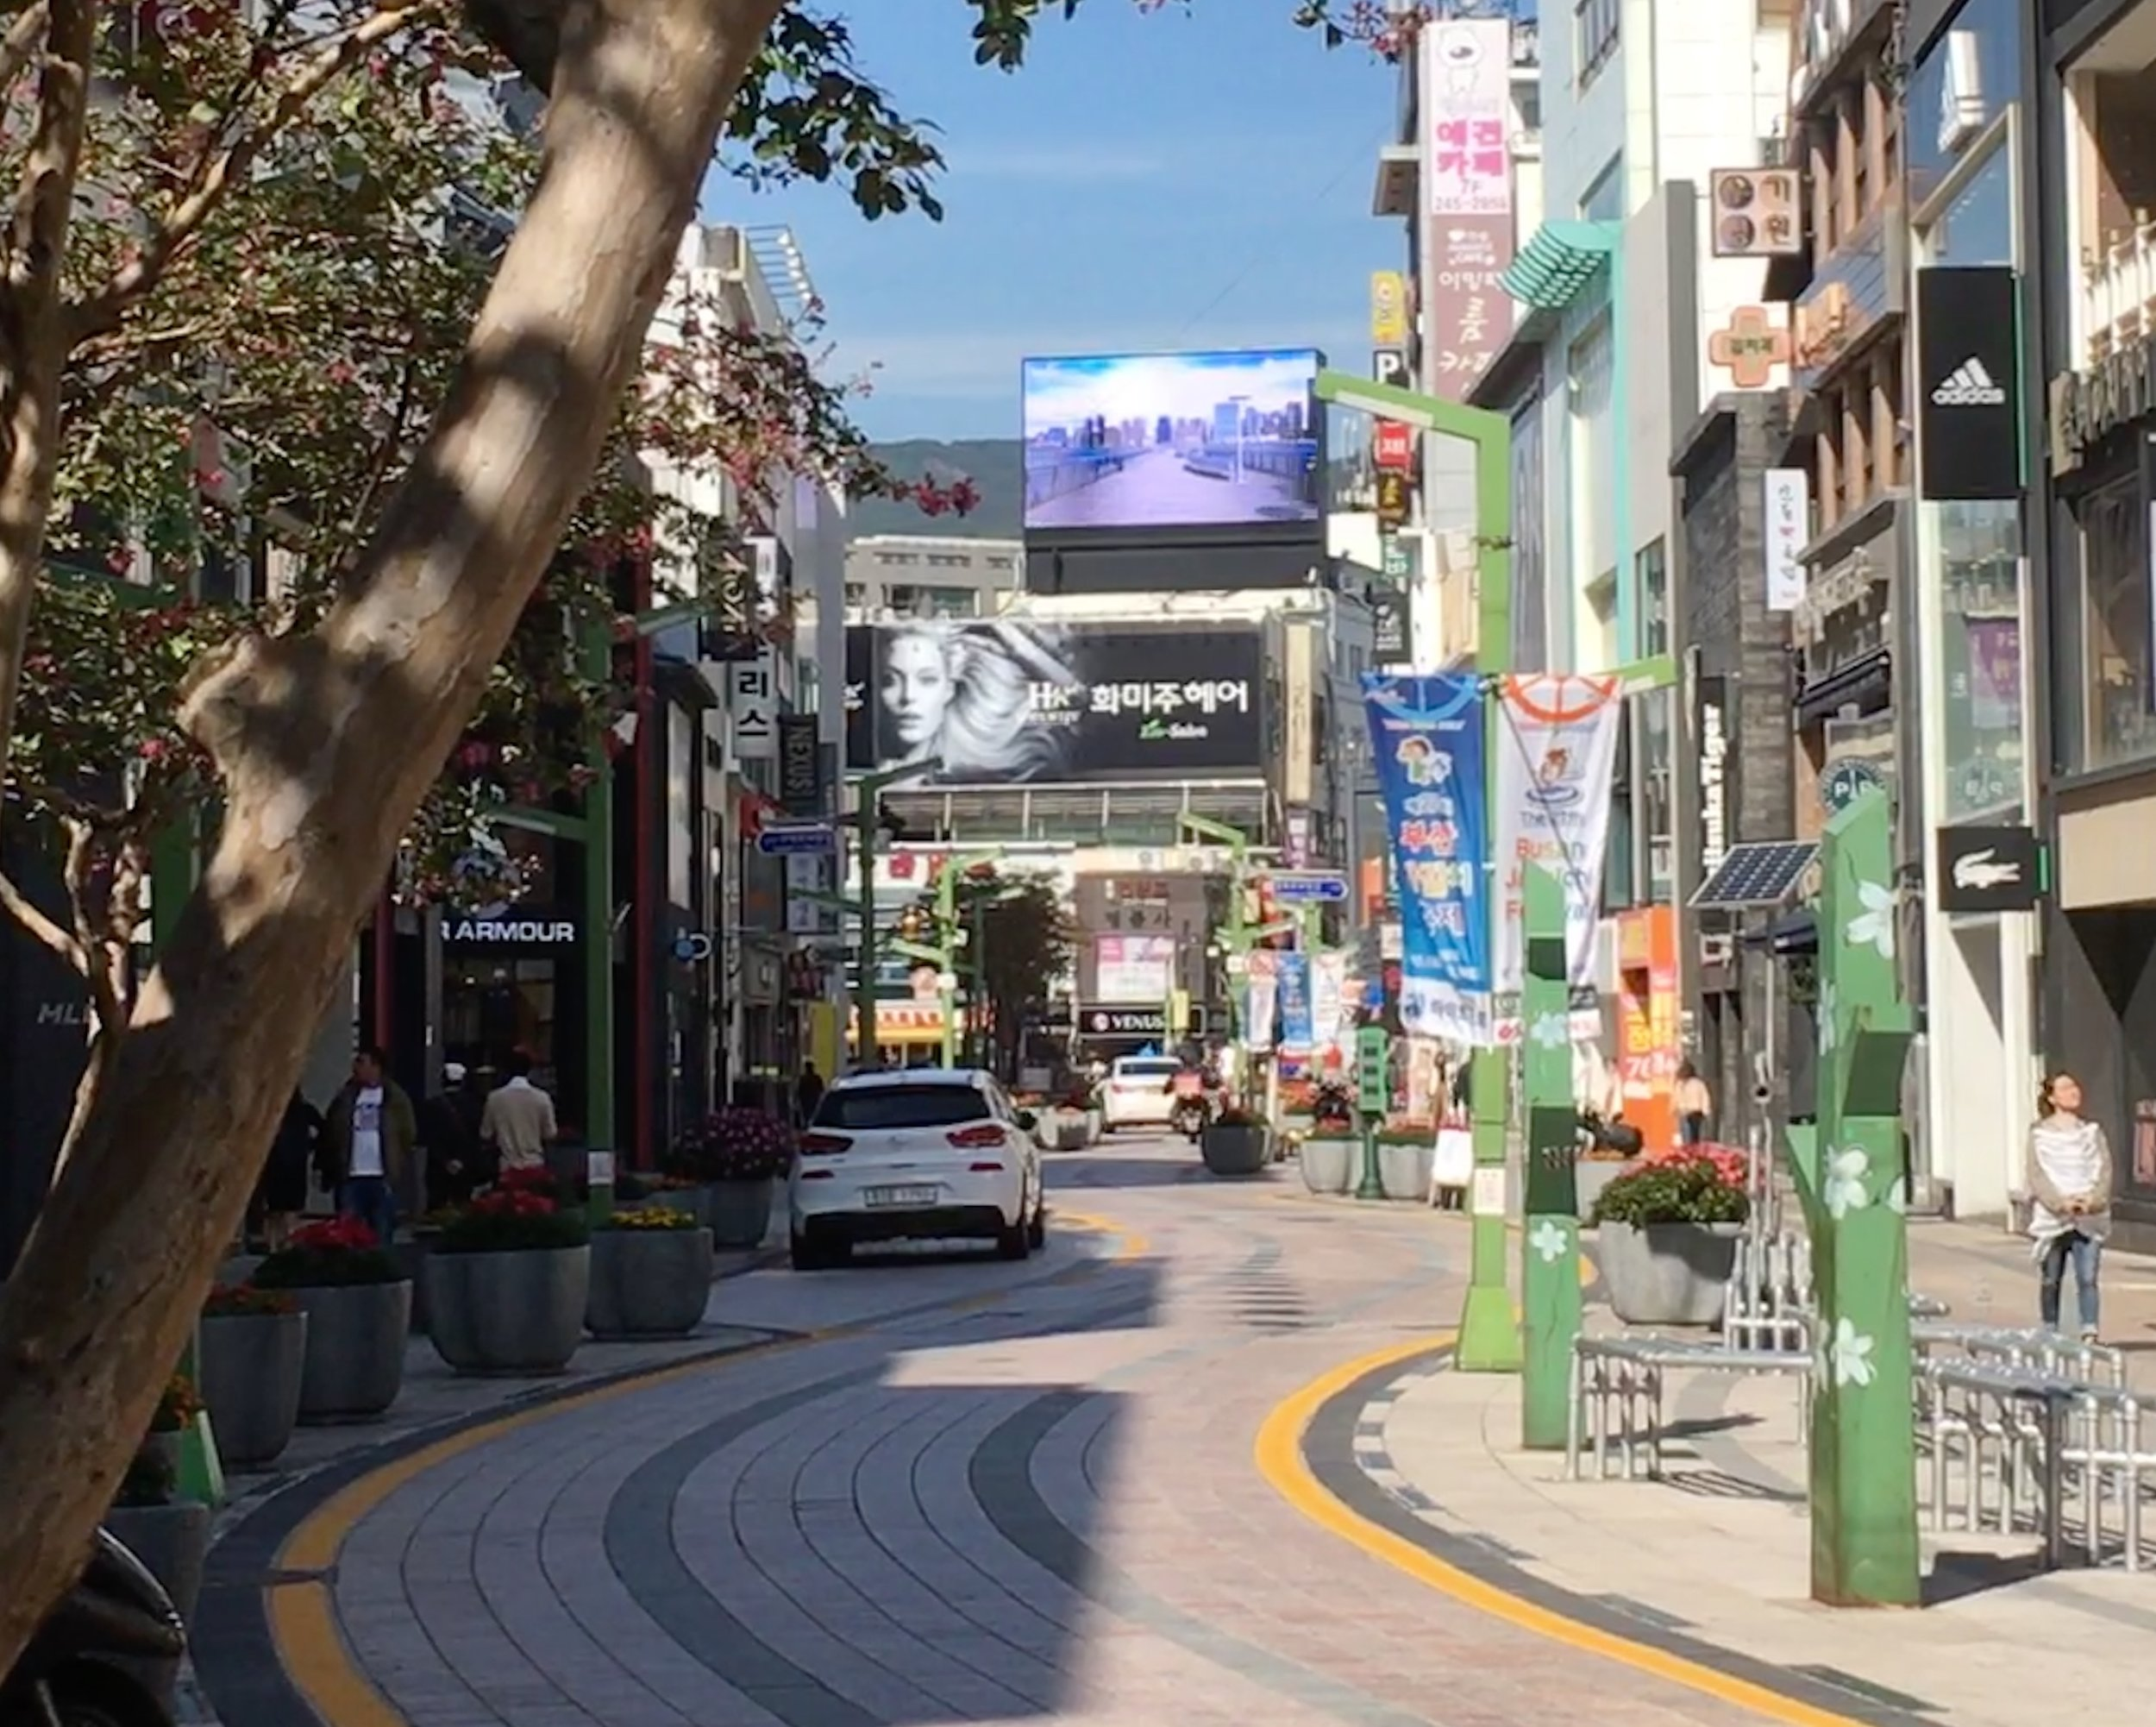 "9. Take a stroll along Gwangbok-ro Street - This street used to be a stream but was covered over around 1895 because the area had become overpopulated and the water polluted. Today, the street mimics the curvy shape of the meandering stream and is lined with vibrant flowers and bronze sculptures. The street means ""independence,"" so it's also known as Independence Road. After the Korean War, refugees and returning locals set about establishing the street as a successful commercial area with cinemas, restaurants and shops. It is still a lively area filled with shops, boutiques and cafes. Bonus tip: You can catch an escalator from this street that will transport you up the hill to Yeongdusan Park and Busan Tower."